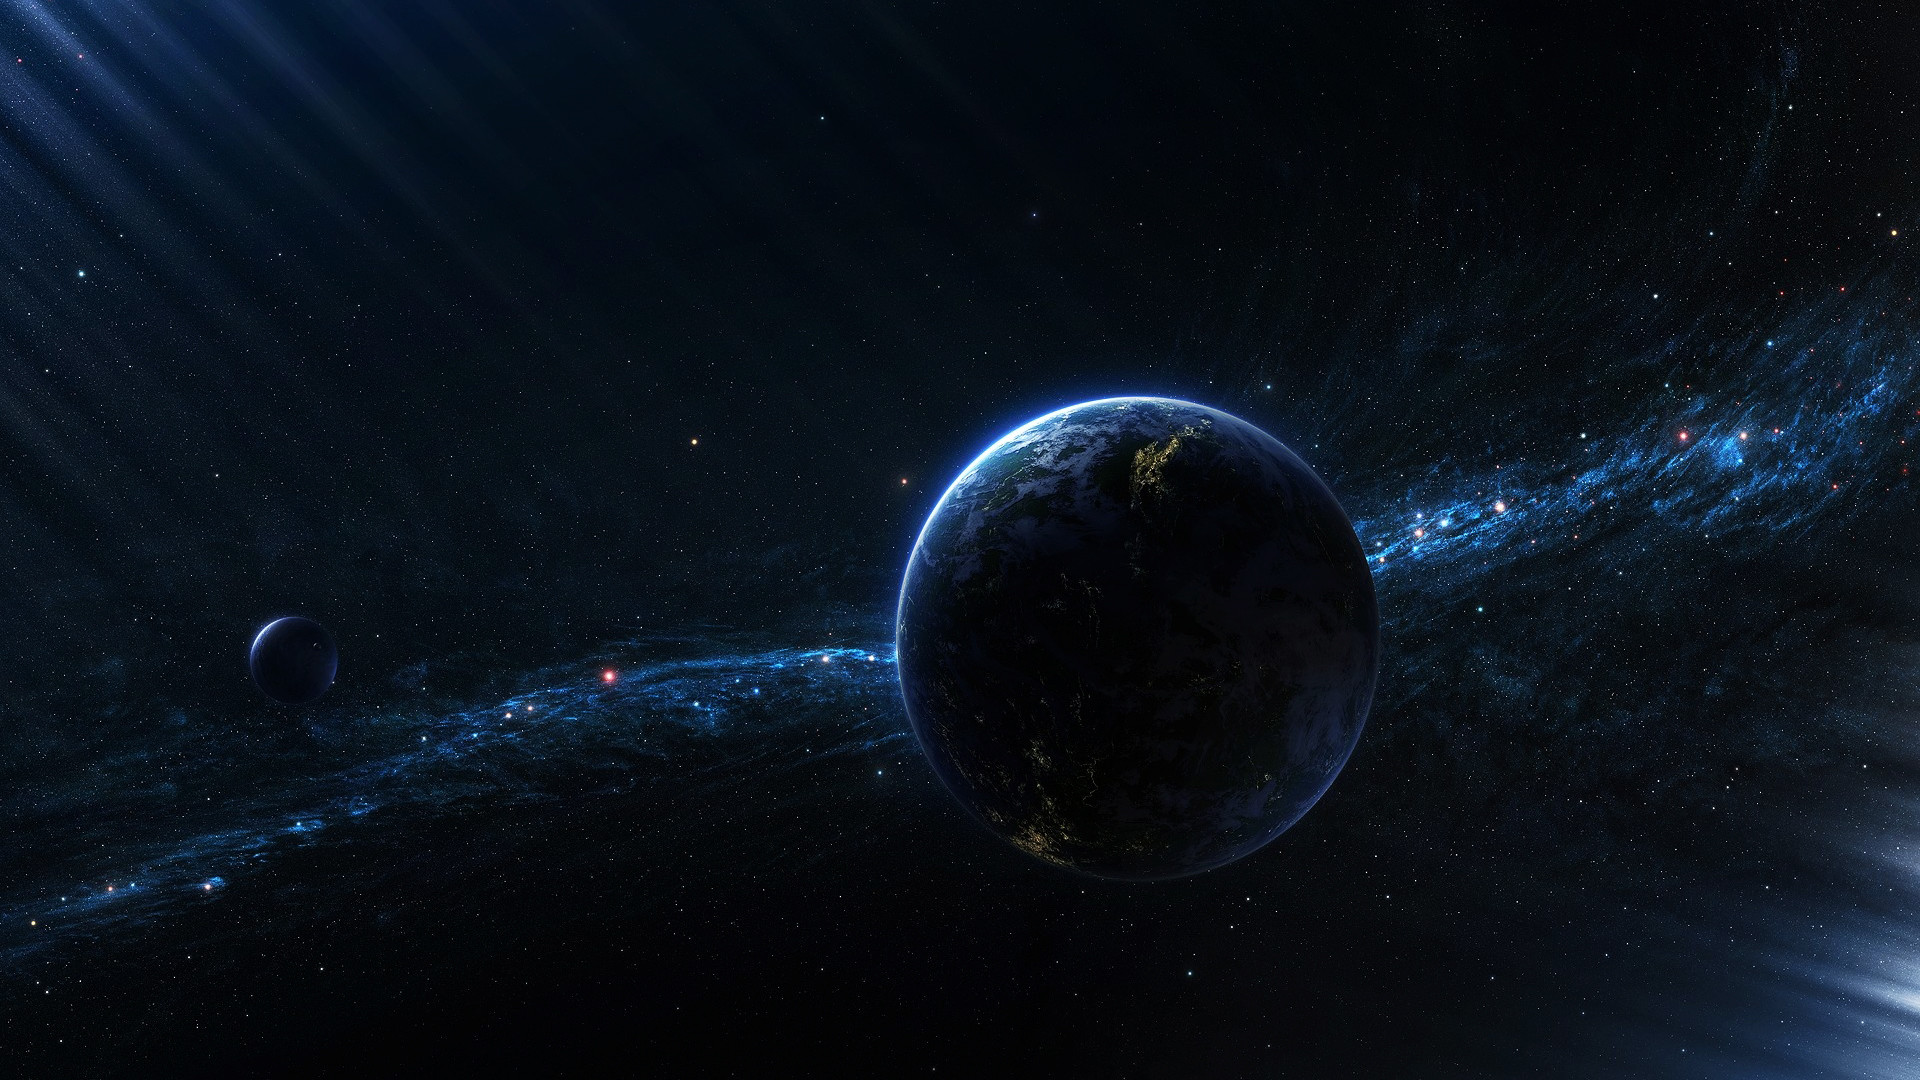 Image Result For Space Wallpaper Space Cataclysm Planet Art Explosion Asteroids